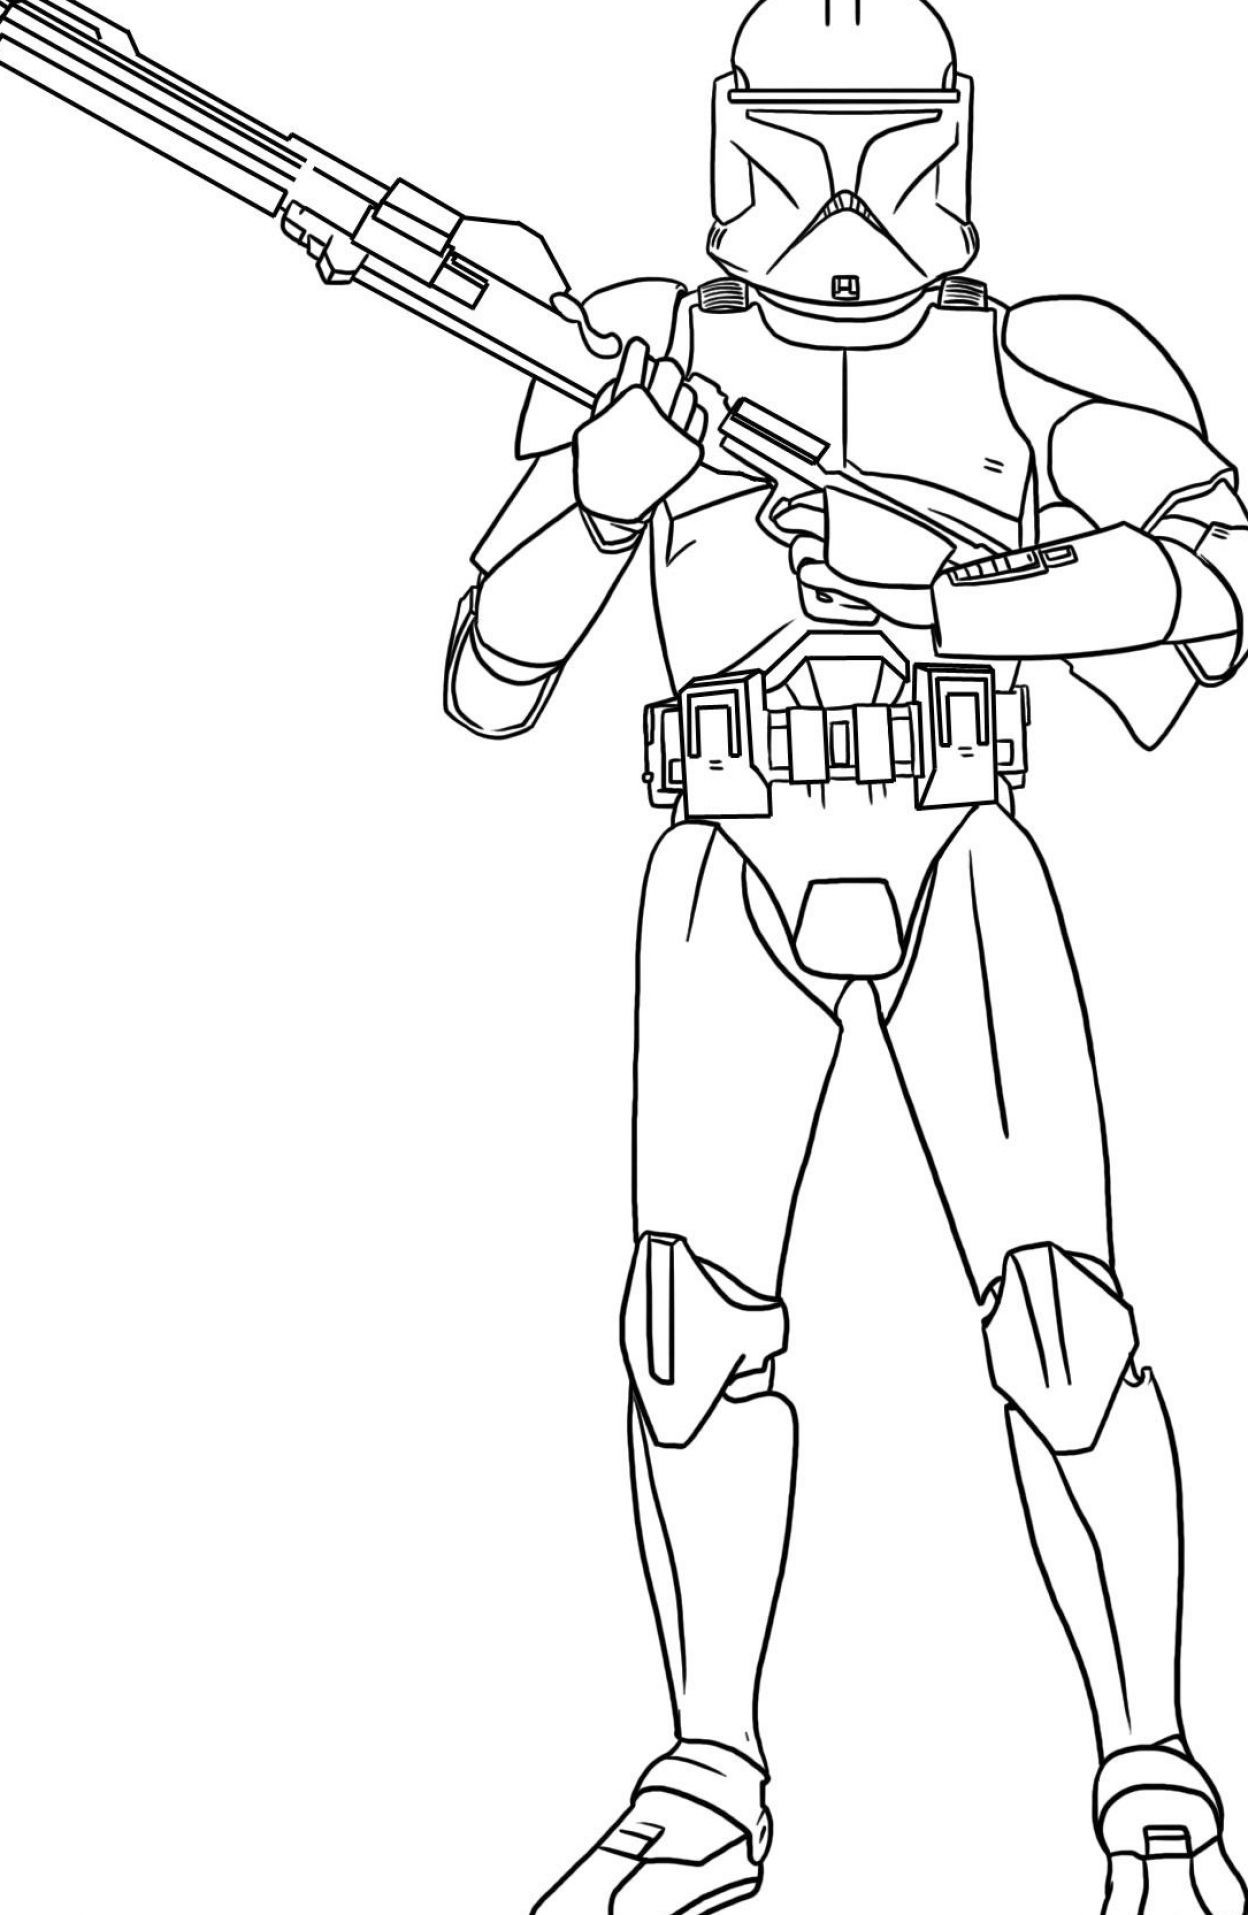 Star Wars clone trooper coloring page | Star Wars party | Pinterest ...